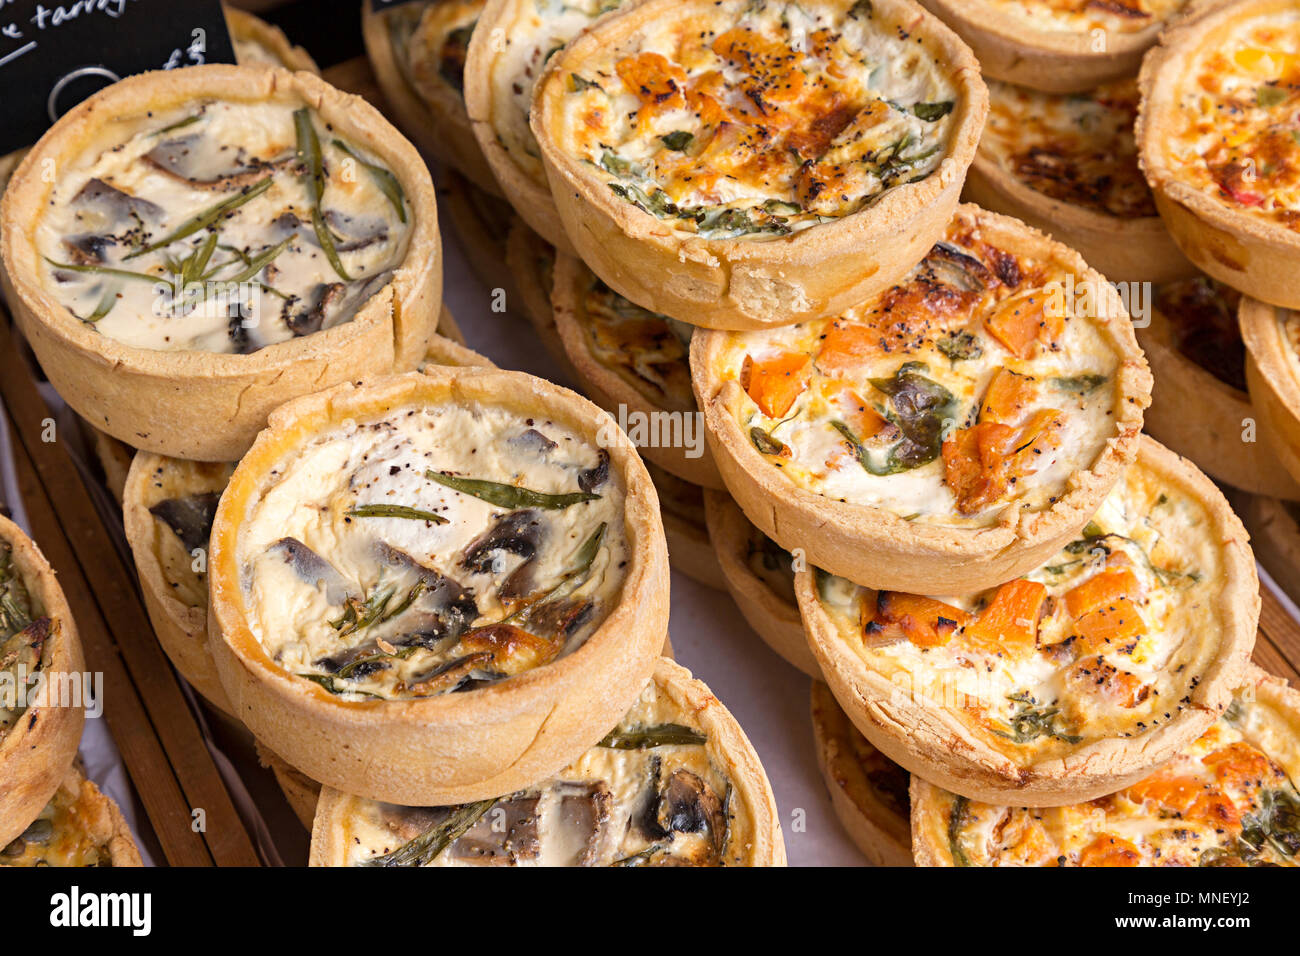 Artisan mushroom and cheese and butternut squash and cheese vegetarian pies on sale at Abergavenny Food Festival, Wales, UK - Stock Image